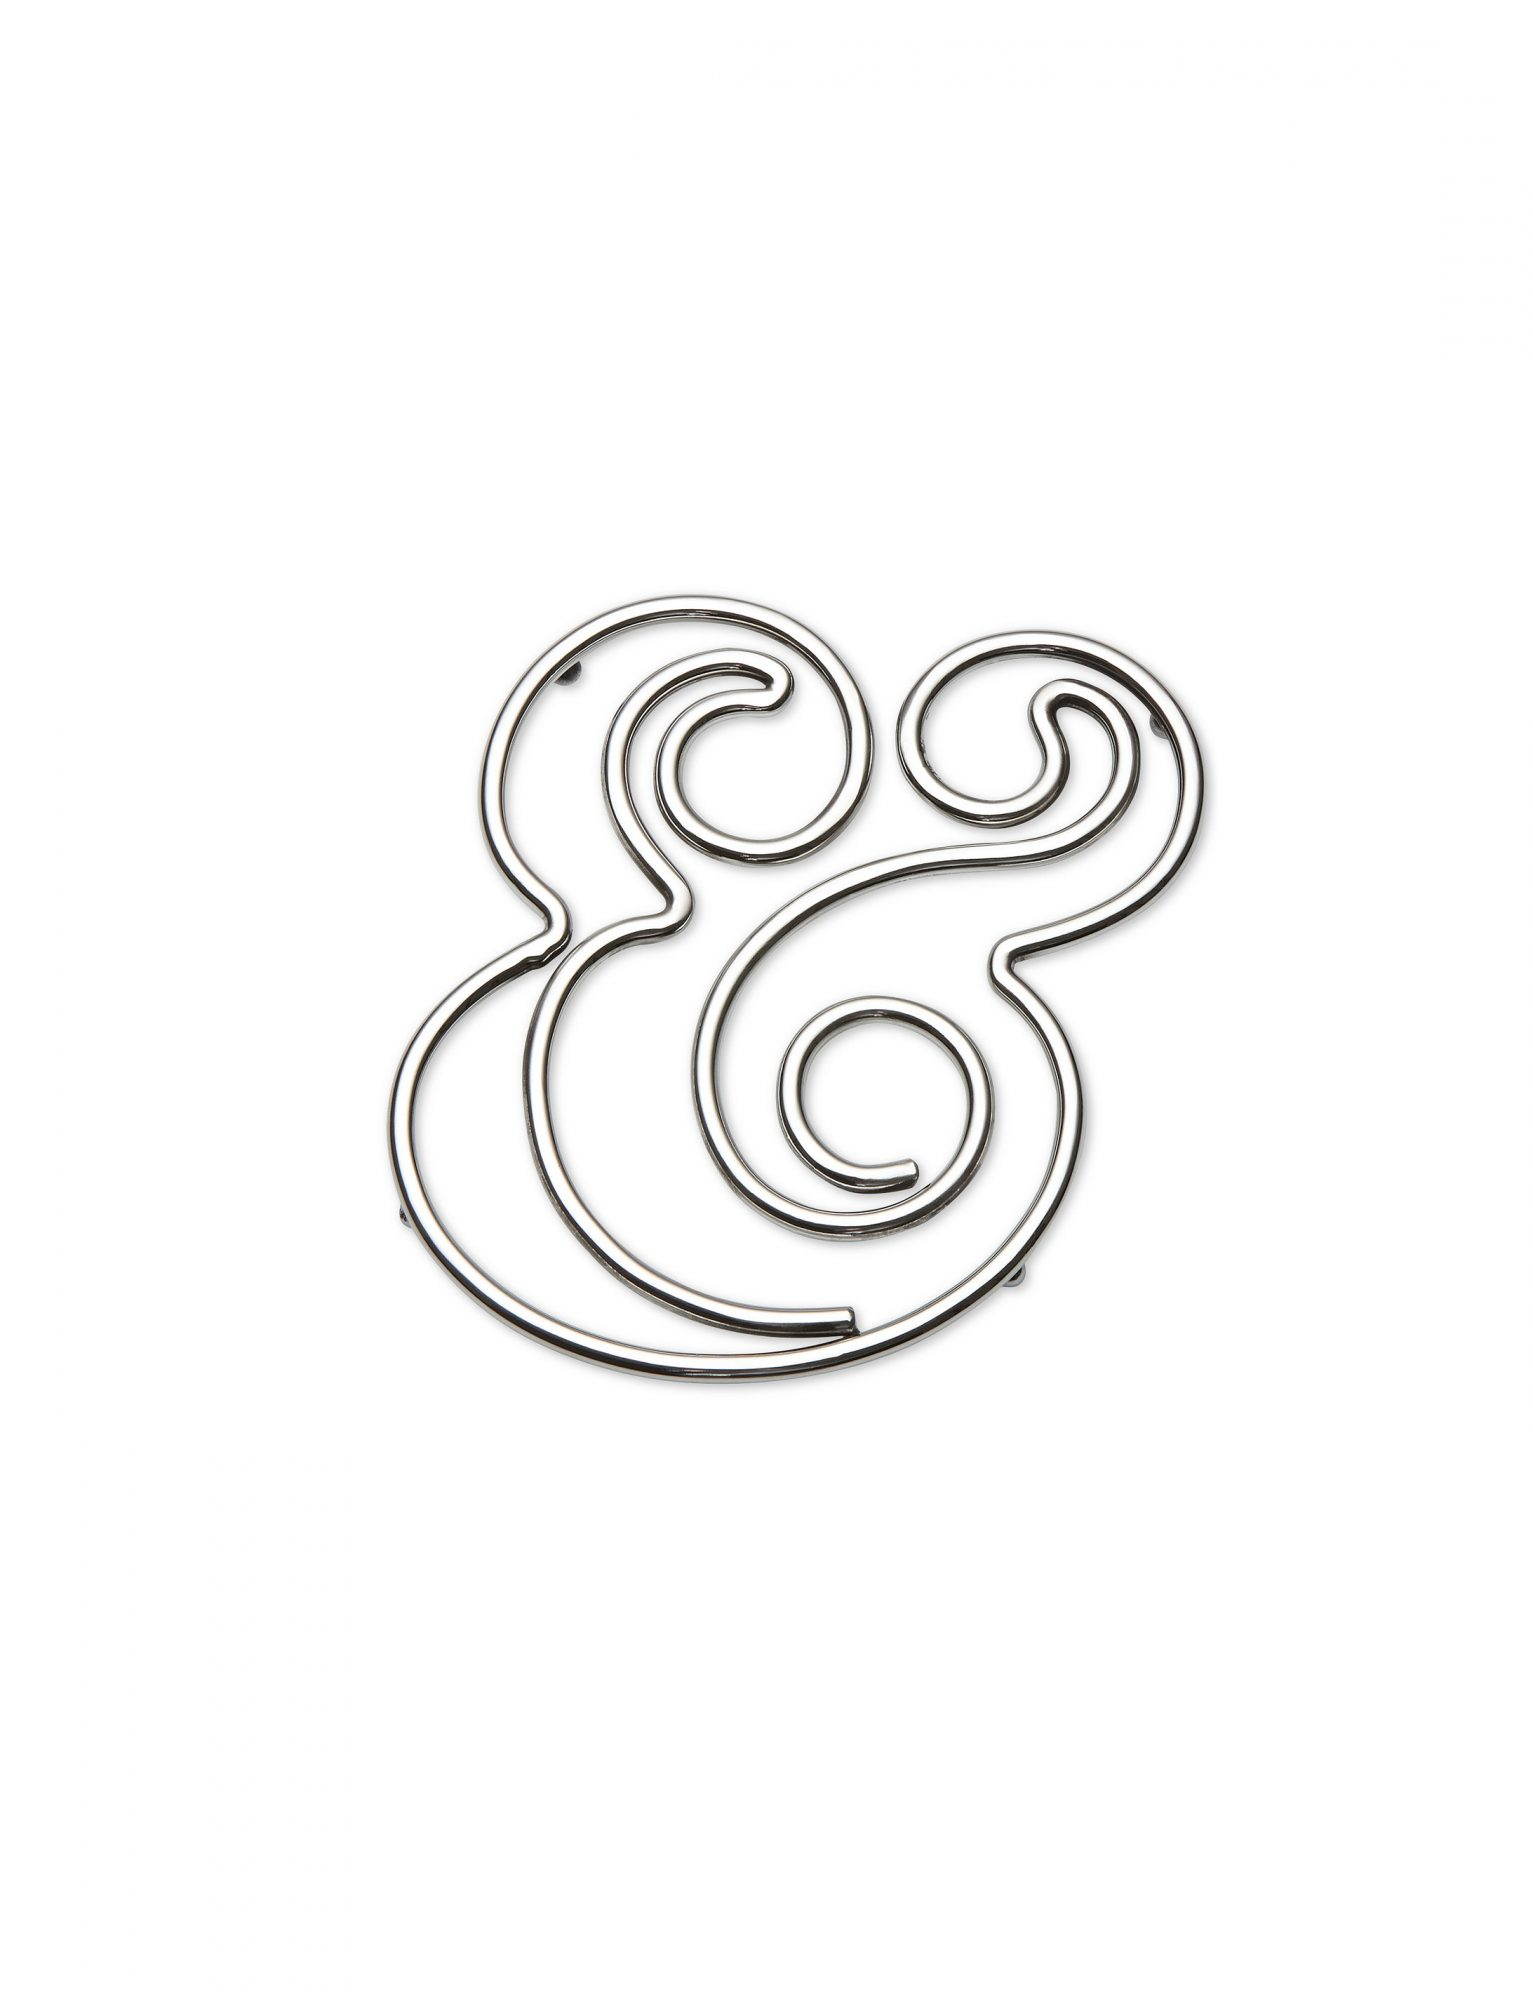 Kate Spade New York Stainless Steel Ampersand Trivet